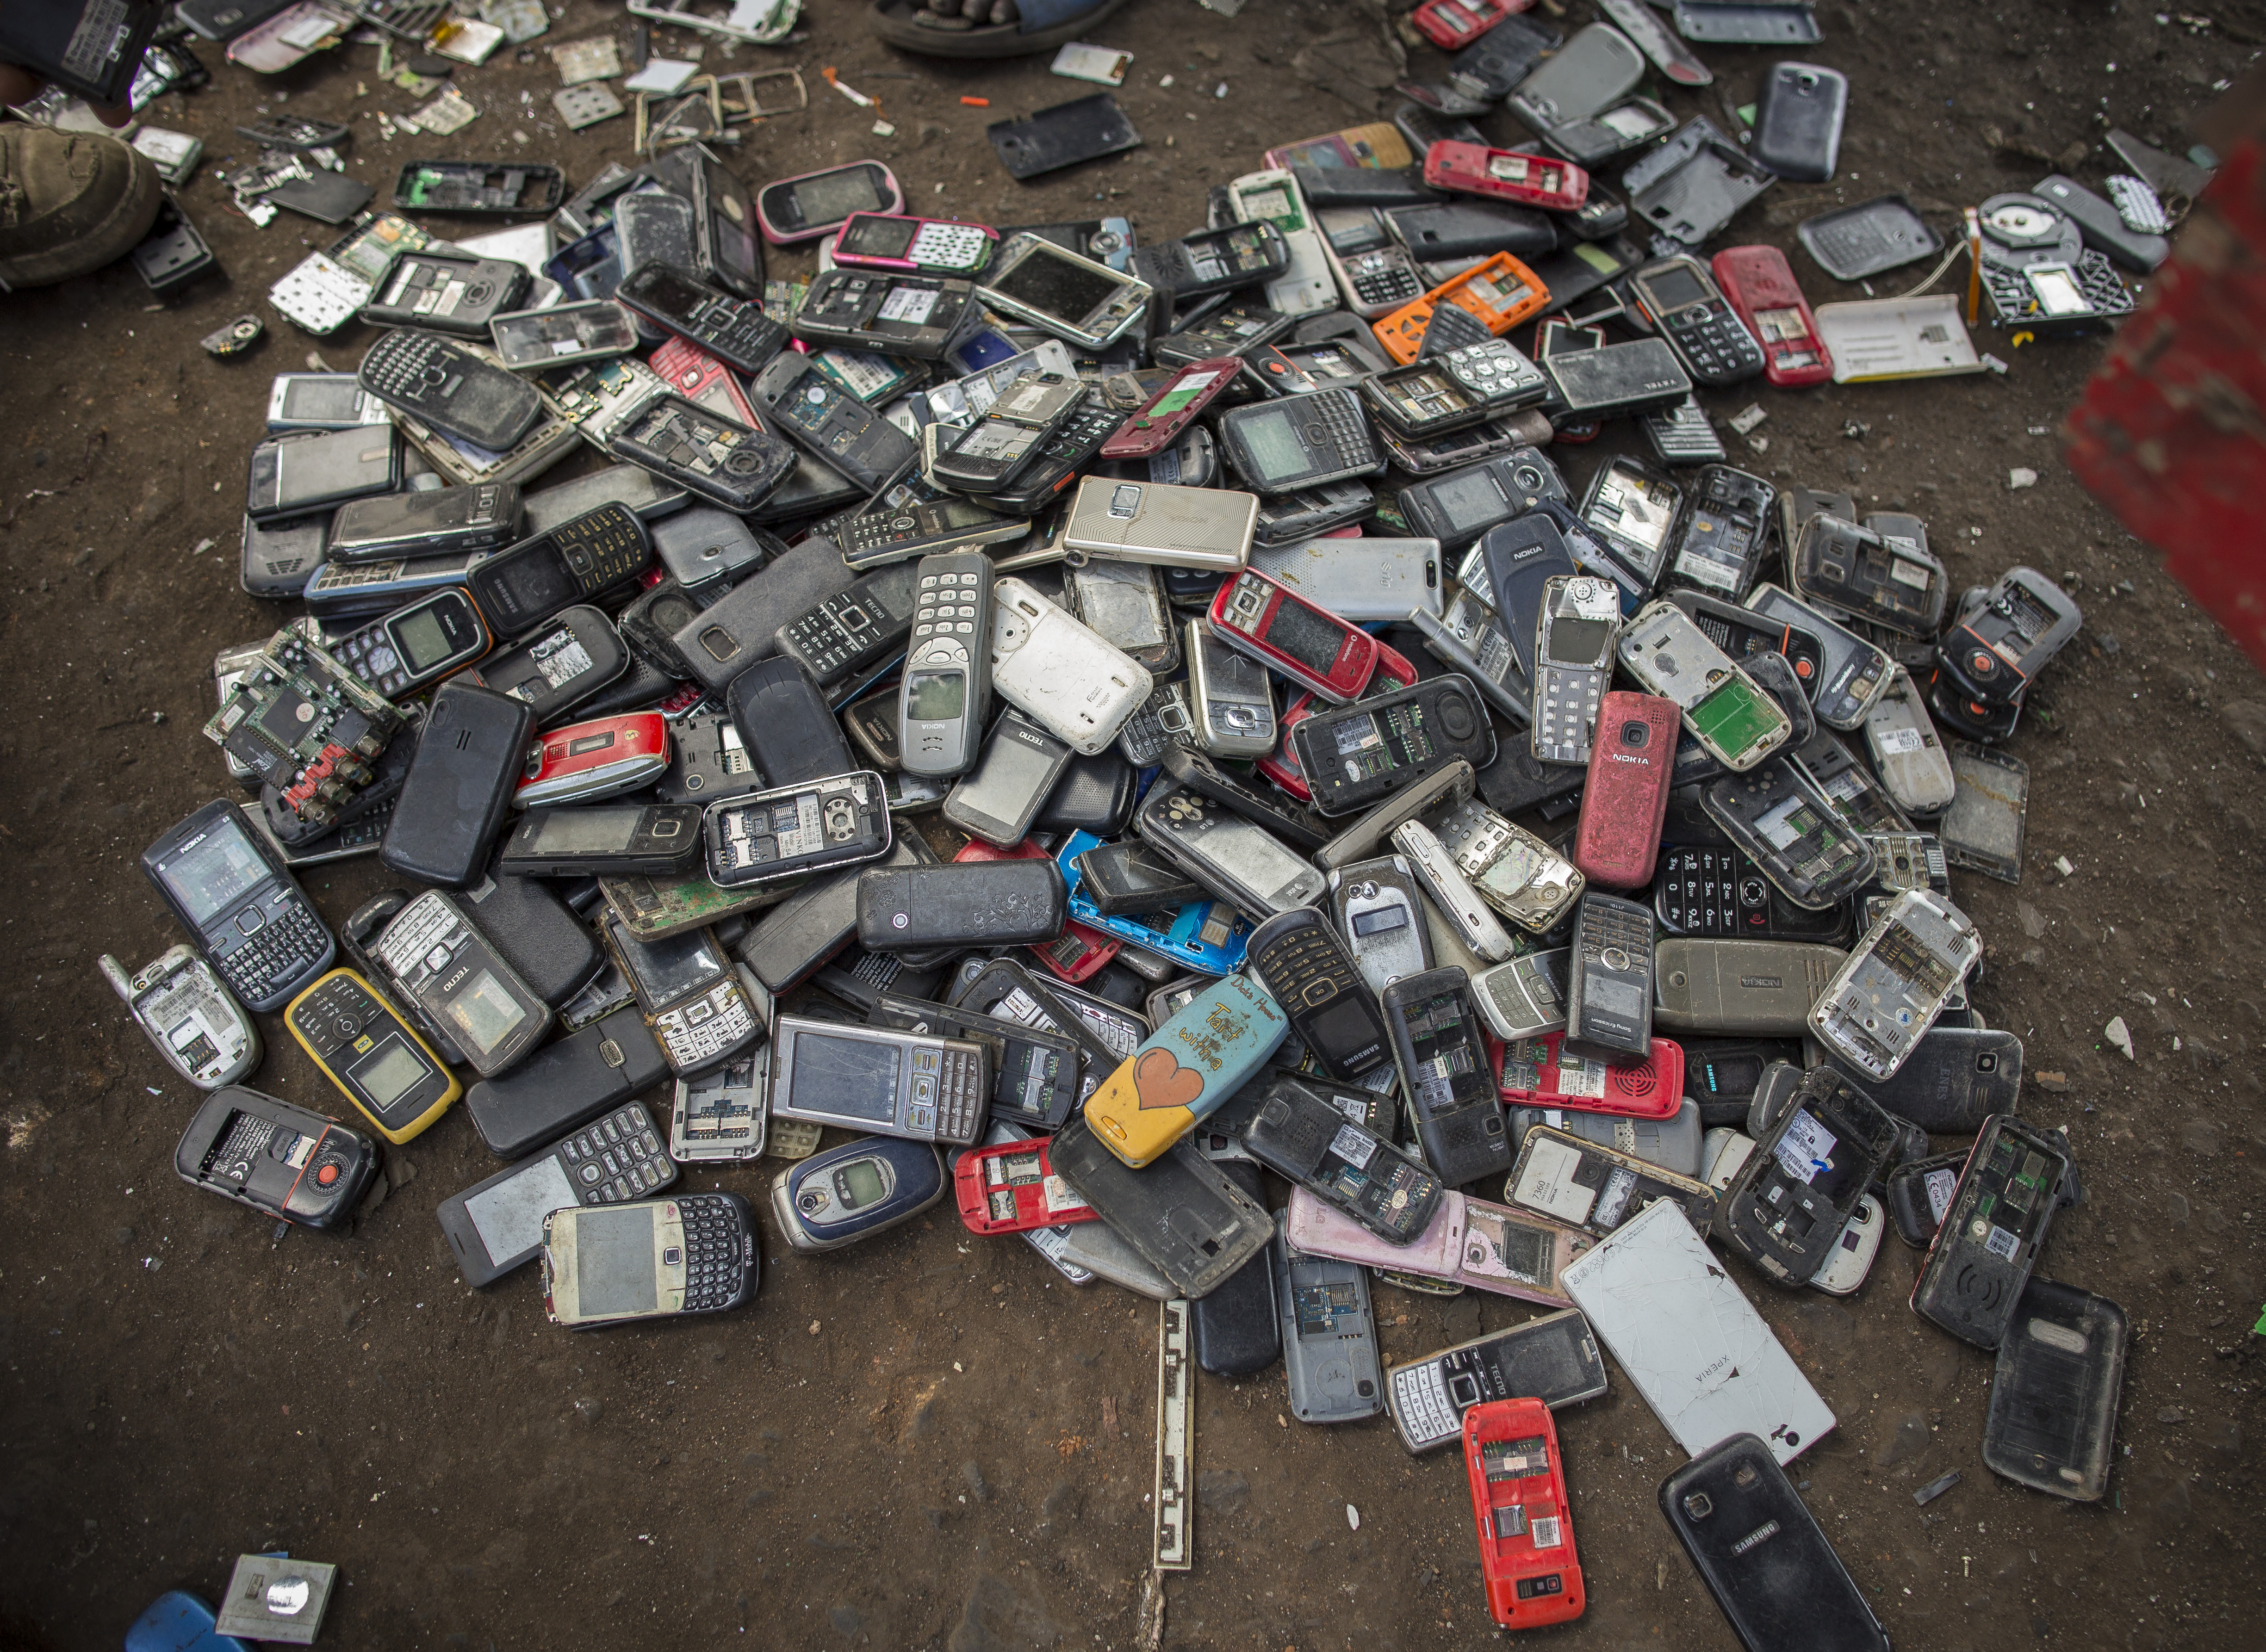 Used electronics, mostly old smartphones, piled on the ground